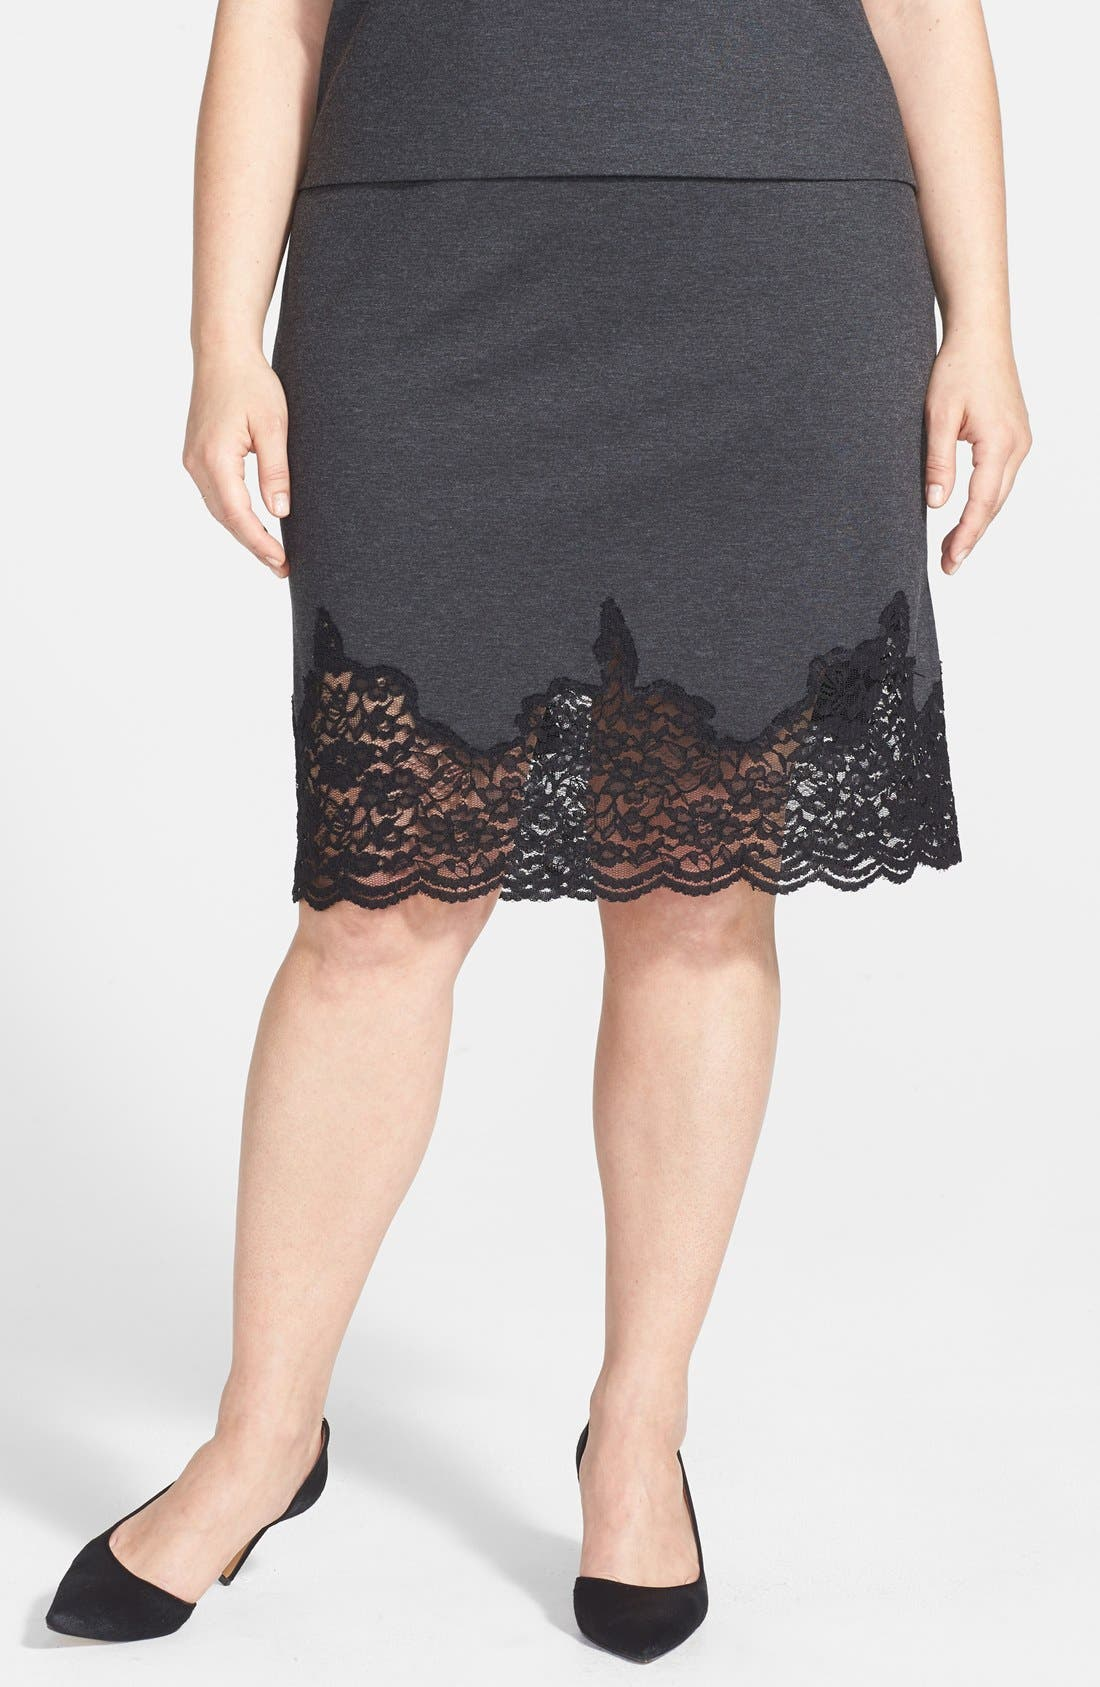 Alternate Image 1 Selected - Vince Camuto Lace Panel Pencil Skirt (Plus Size)